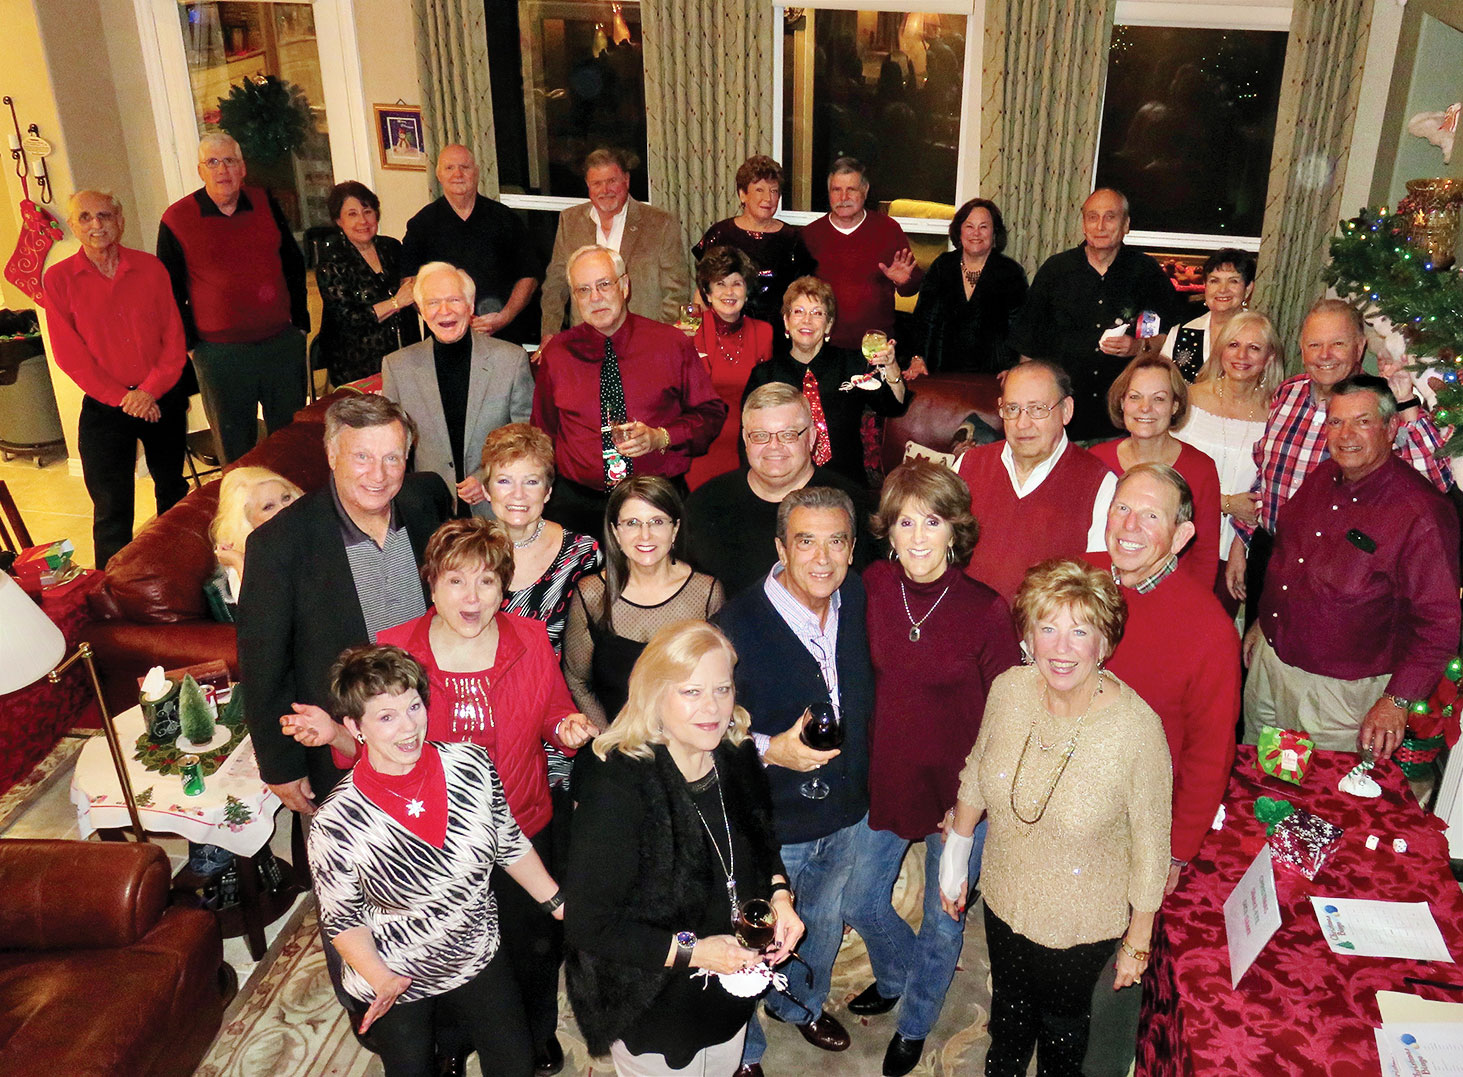 Attendees of the Gilberti's gathering